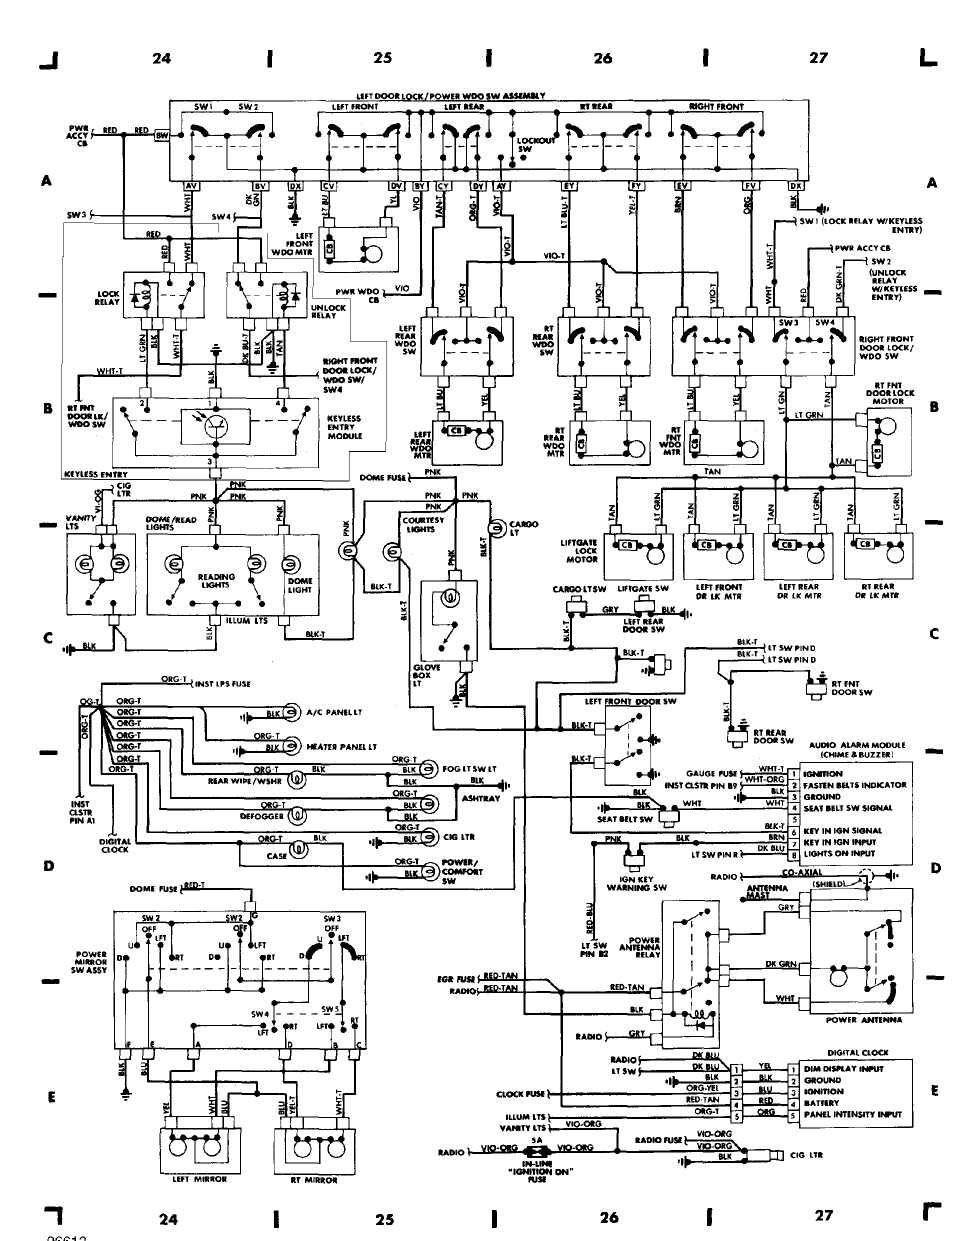 wiring_diagrams_html_61f5e0ad wiring diagrams 1984 1991 jeep cherokee (xj) jeep 2001 jeep cherokee sport fuse box diagram at bayanpartner.co